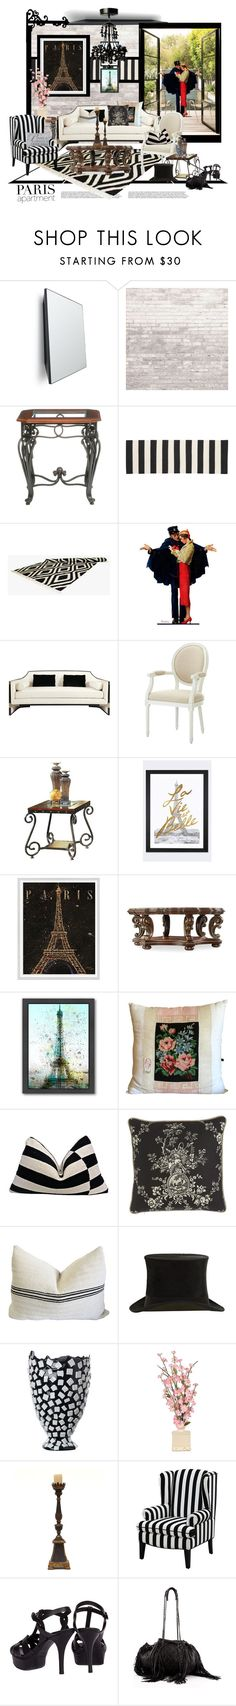 """Paris Garden"" by traceygraves on Polyvore featuring interior, interiors, interior design, home, home decor, interior decorating, Auerberg, WALL, Southern Enterprises and Crate and Barrel"